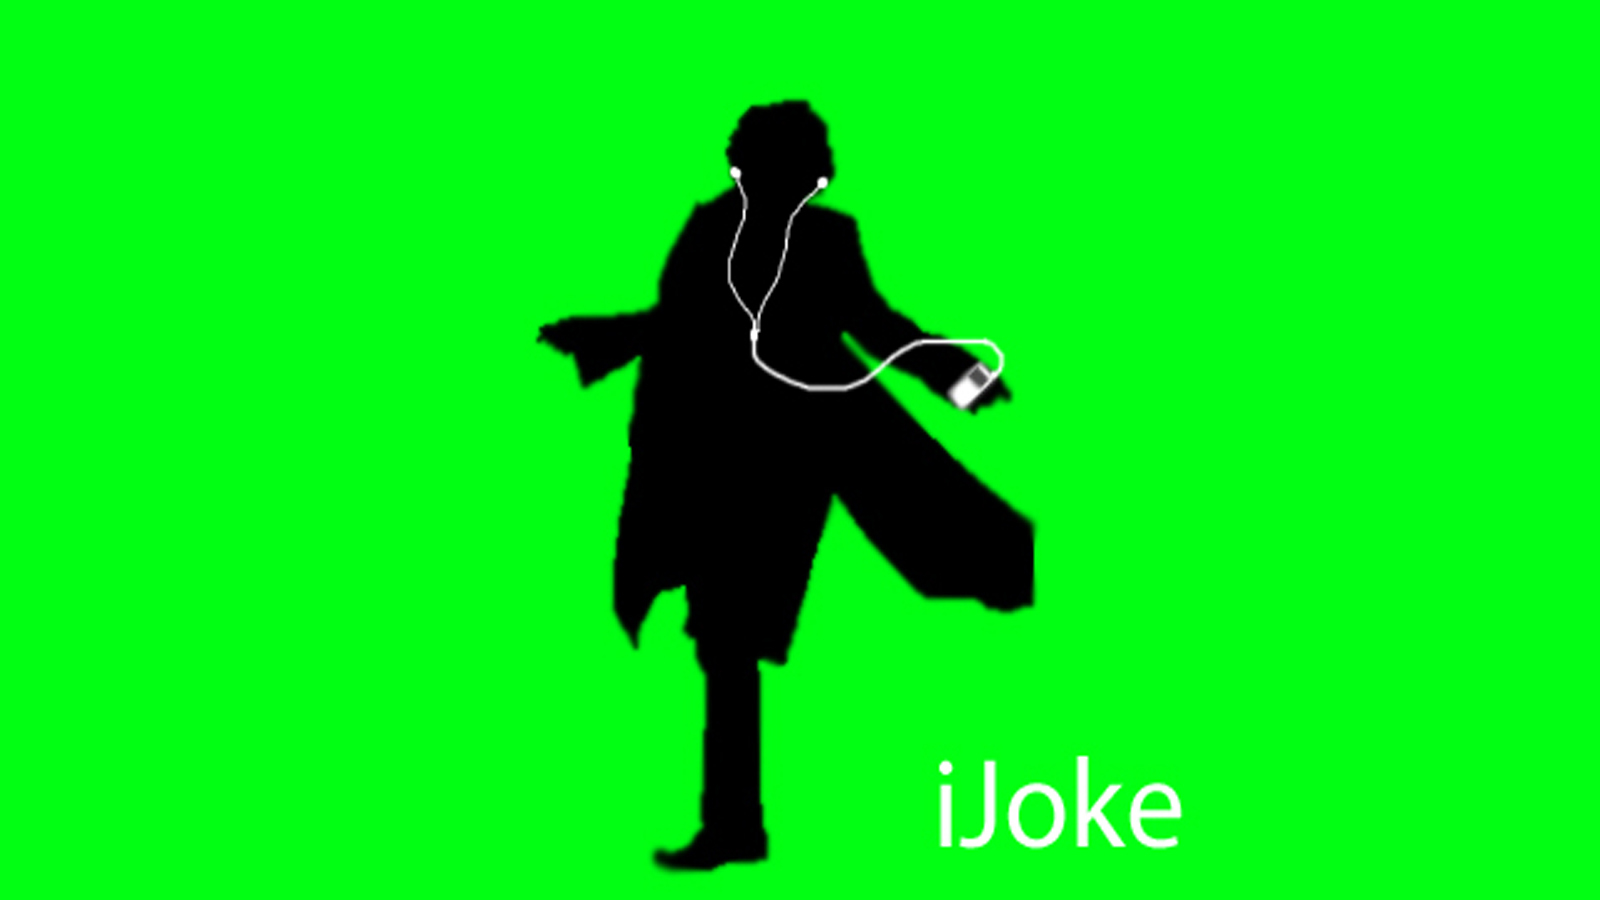 ipod The joker Company HD Wallpaper